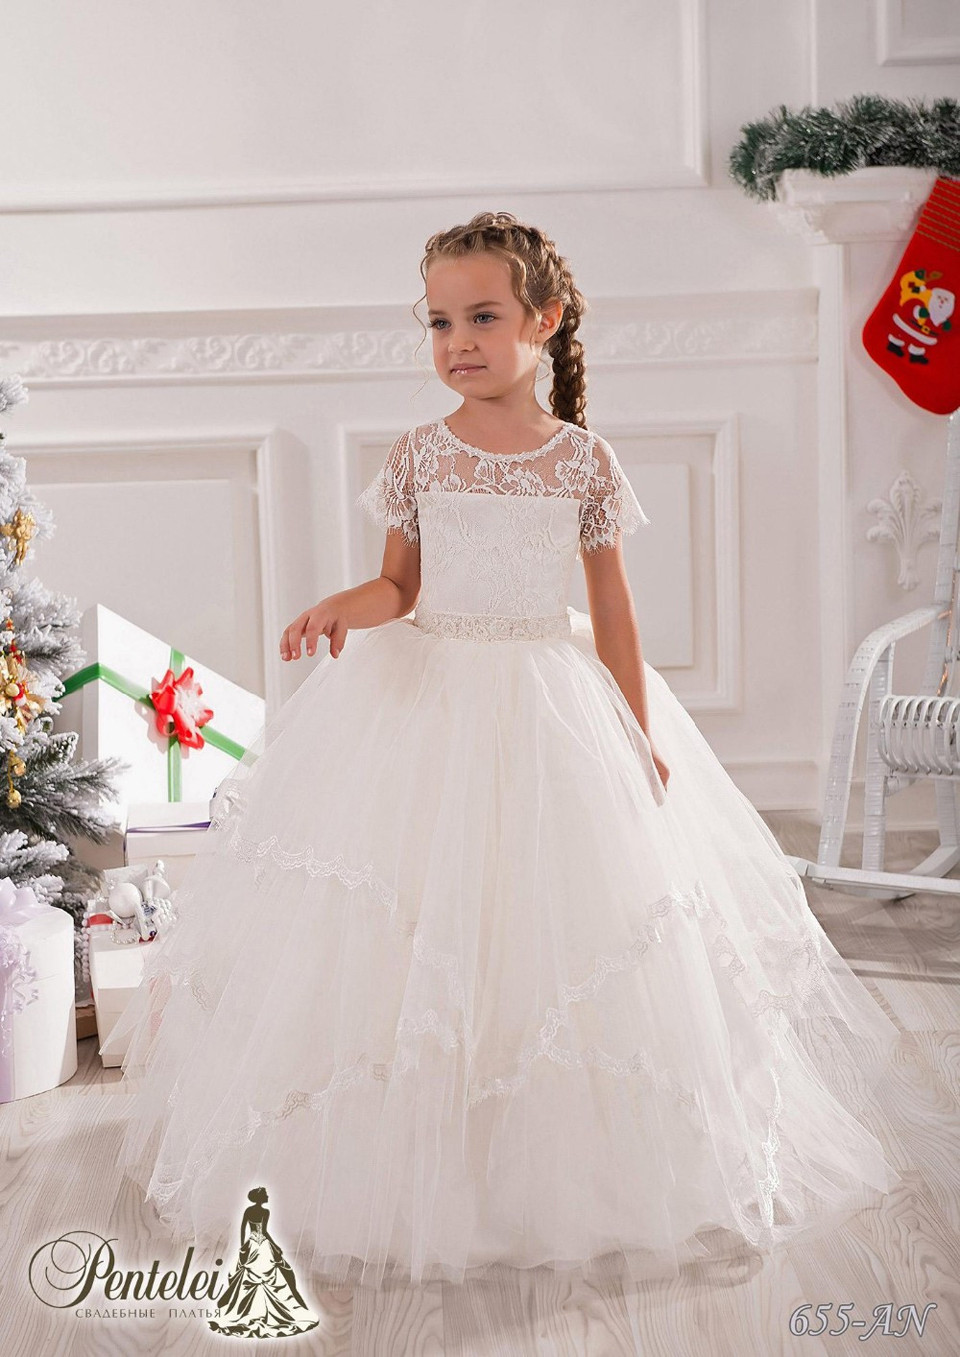 Graceful White/Ivory Ankle Length Tulle Tiered Flower Girl Dress Wedding Hollow Back Ball Gowns Little Girl Evening Gowns 2016